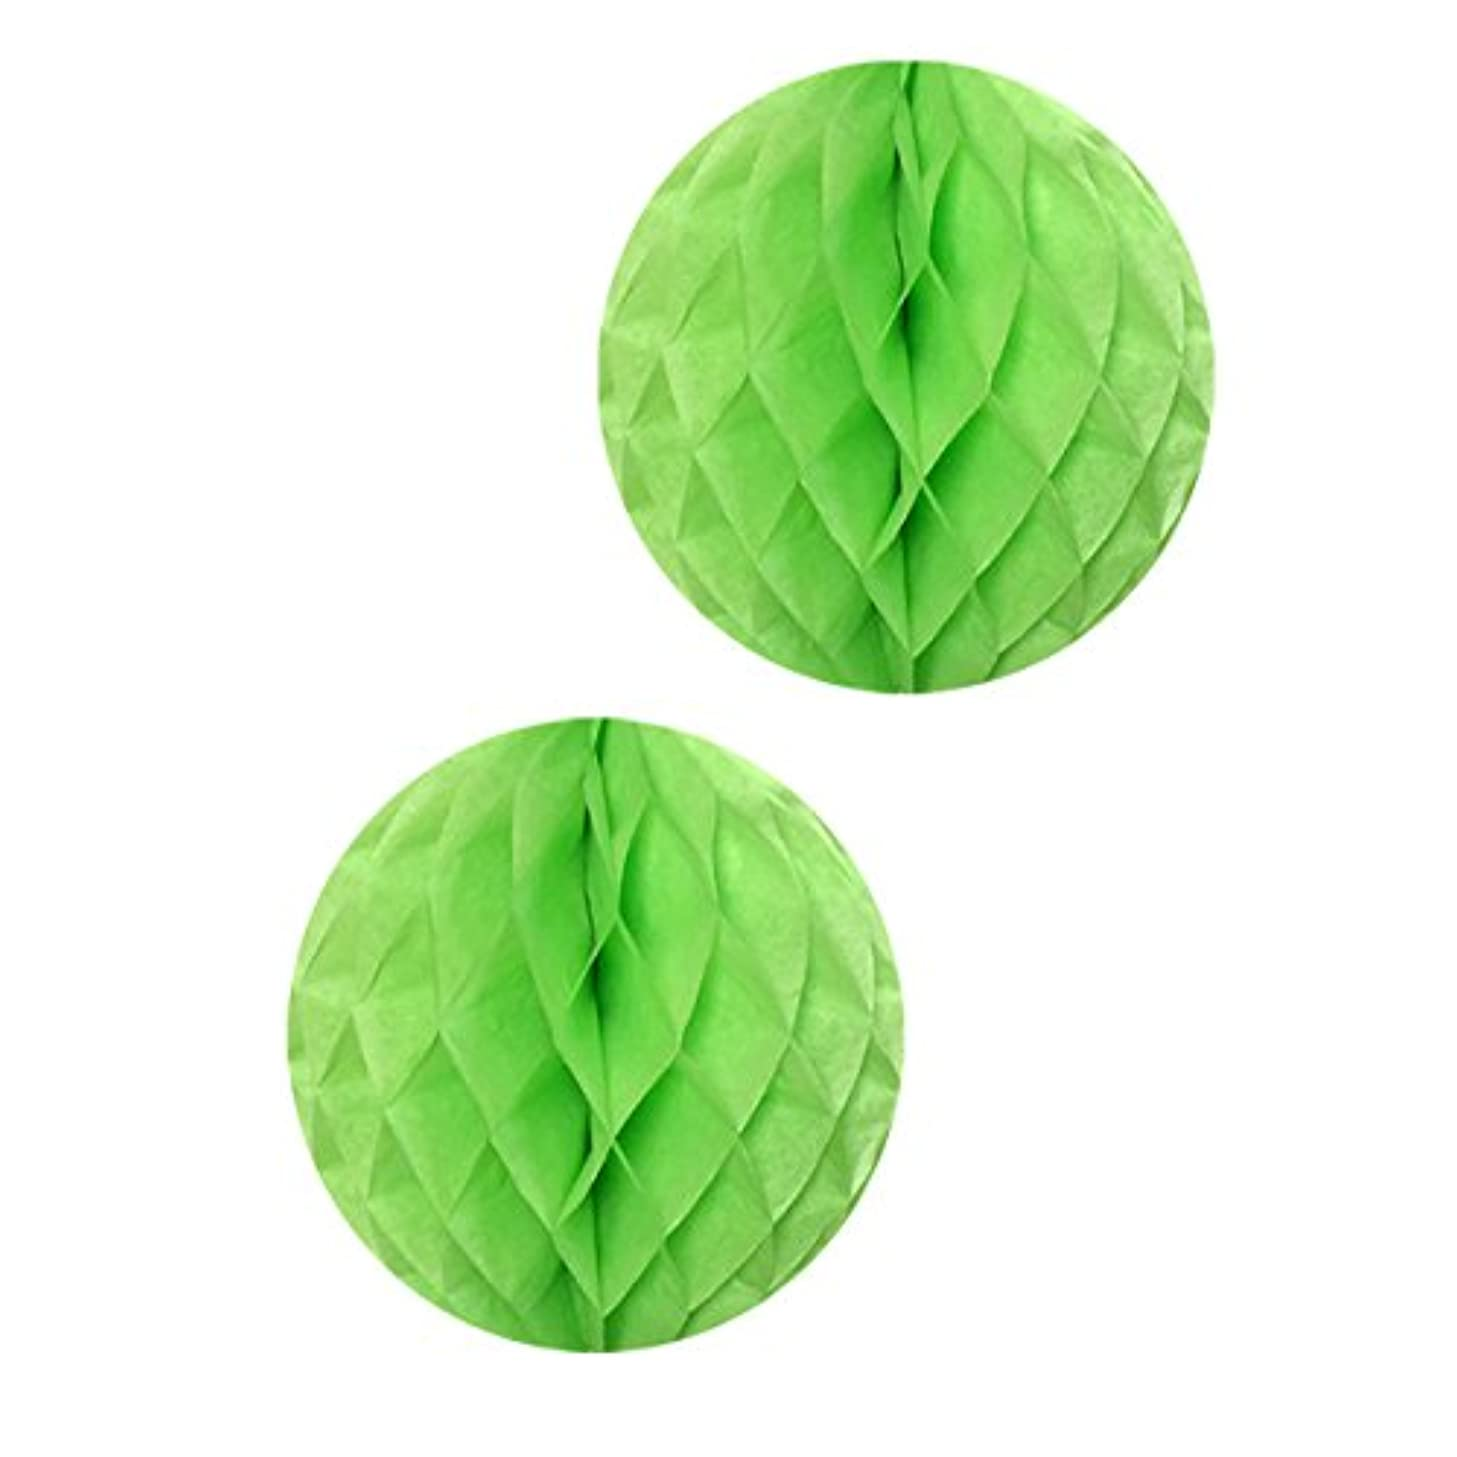 Allydrew Hanging Party Decoration, 16 Inch Tissue Honeycomb Ball for Weddings, Birthday Parties, Baby Showers, and Nursery Décor (2 pack), Light Green